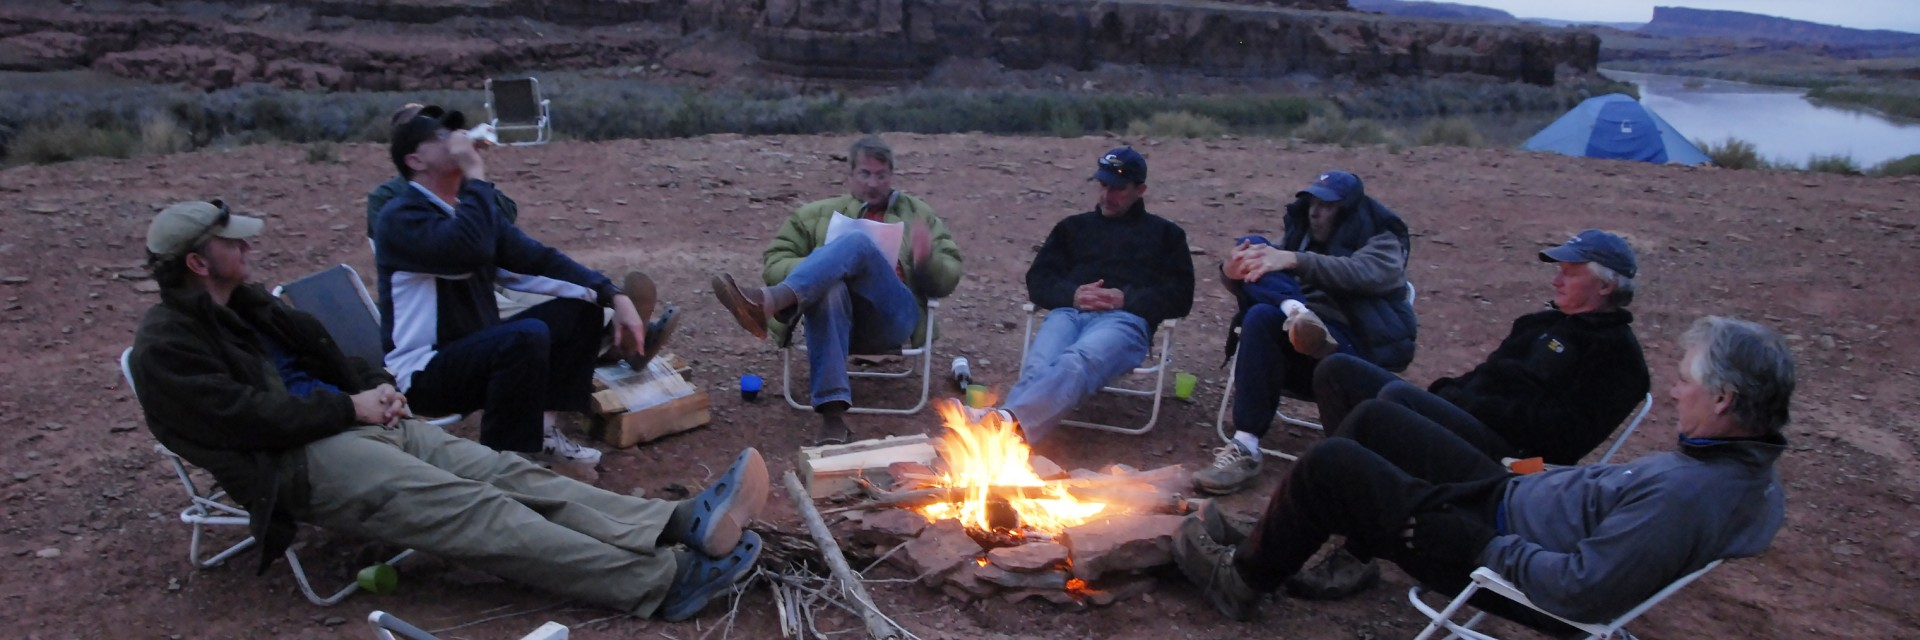 At camp along the Colorado River during a Needles to Moab backcountry weekend guided mountain bike tour